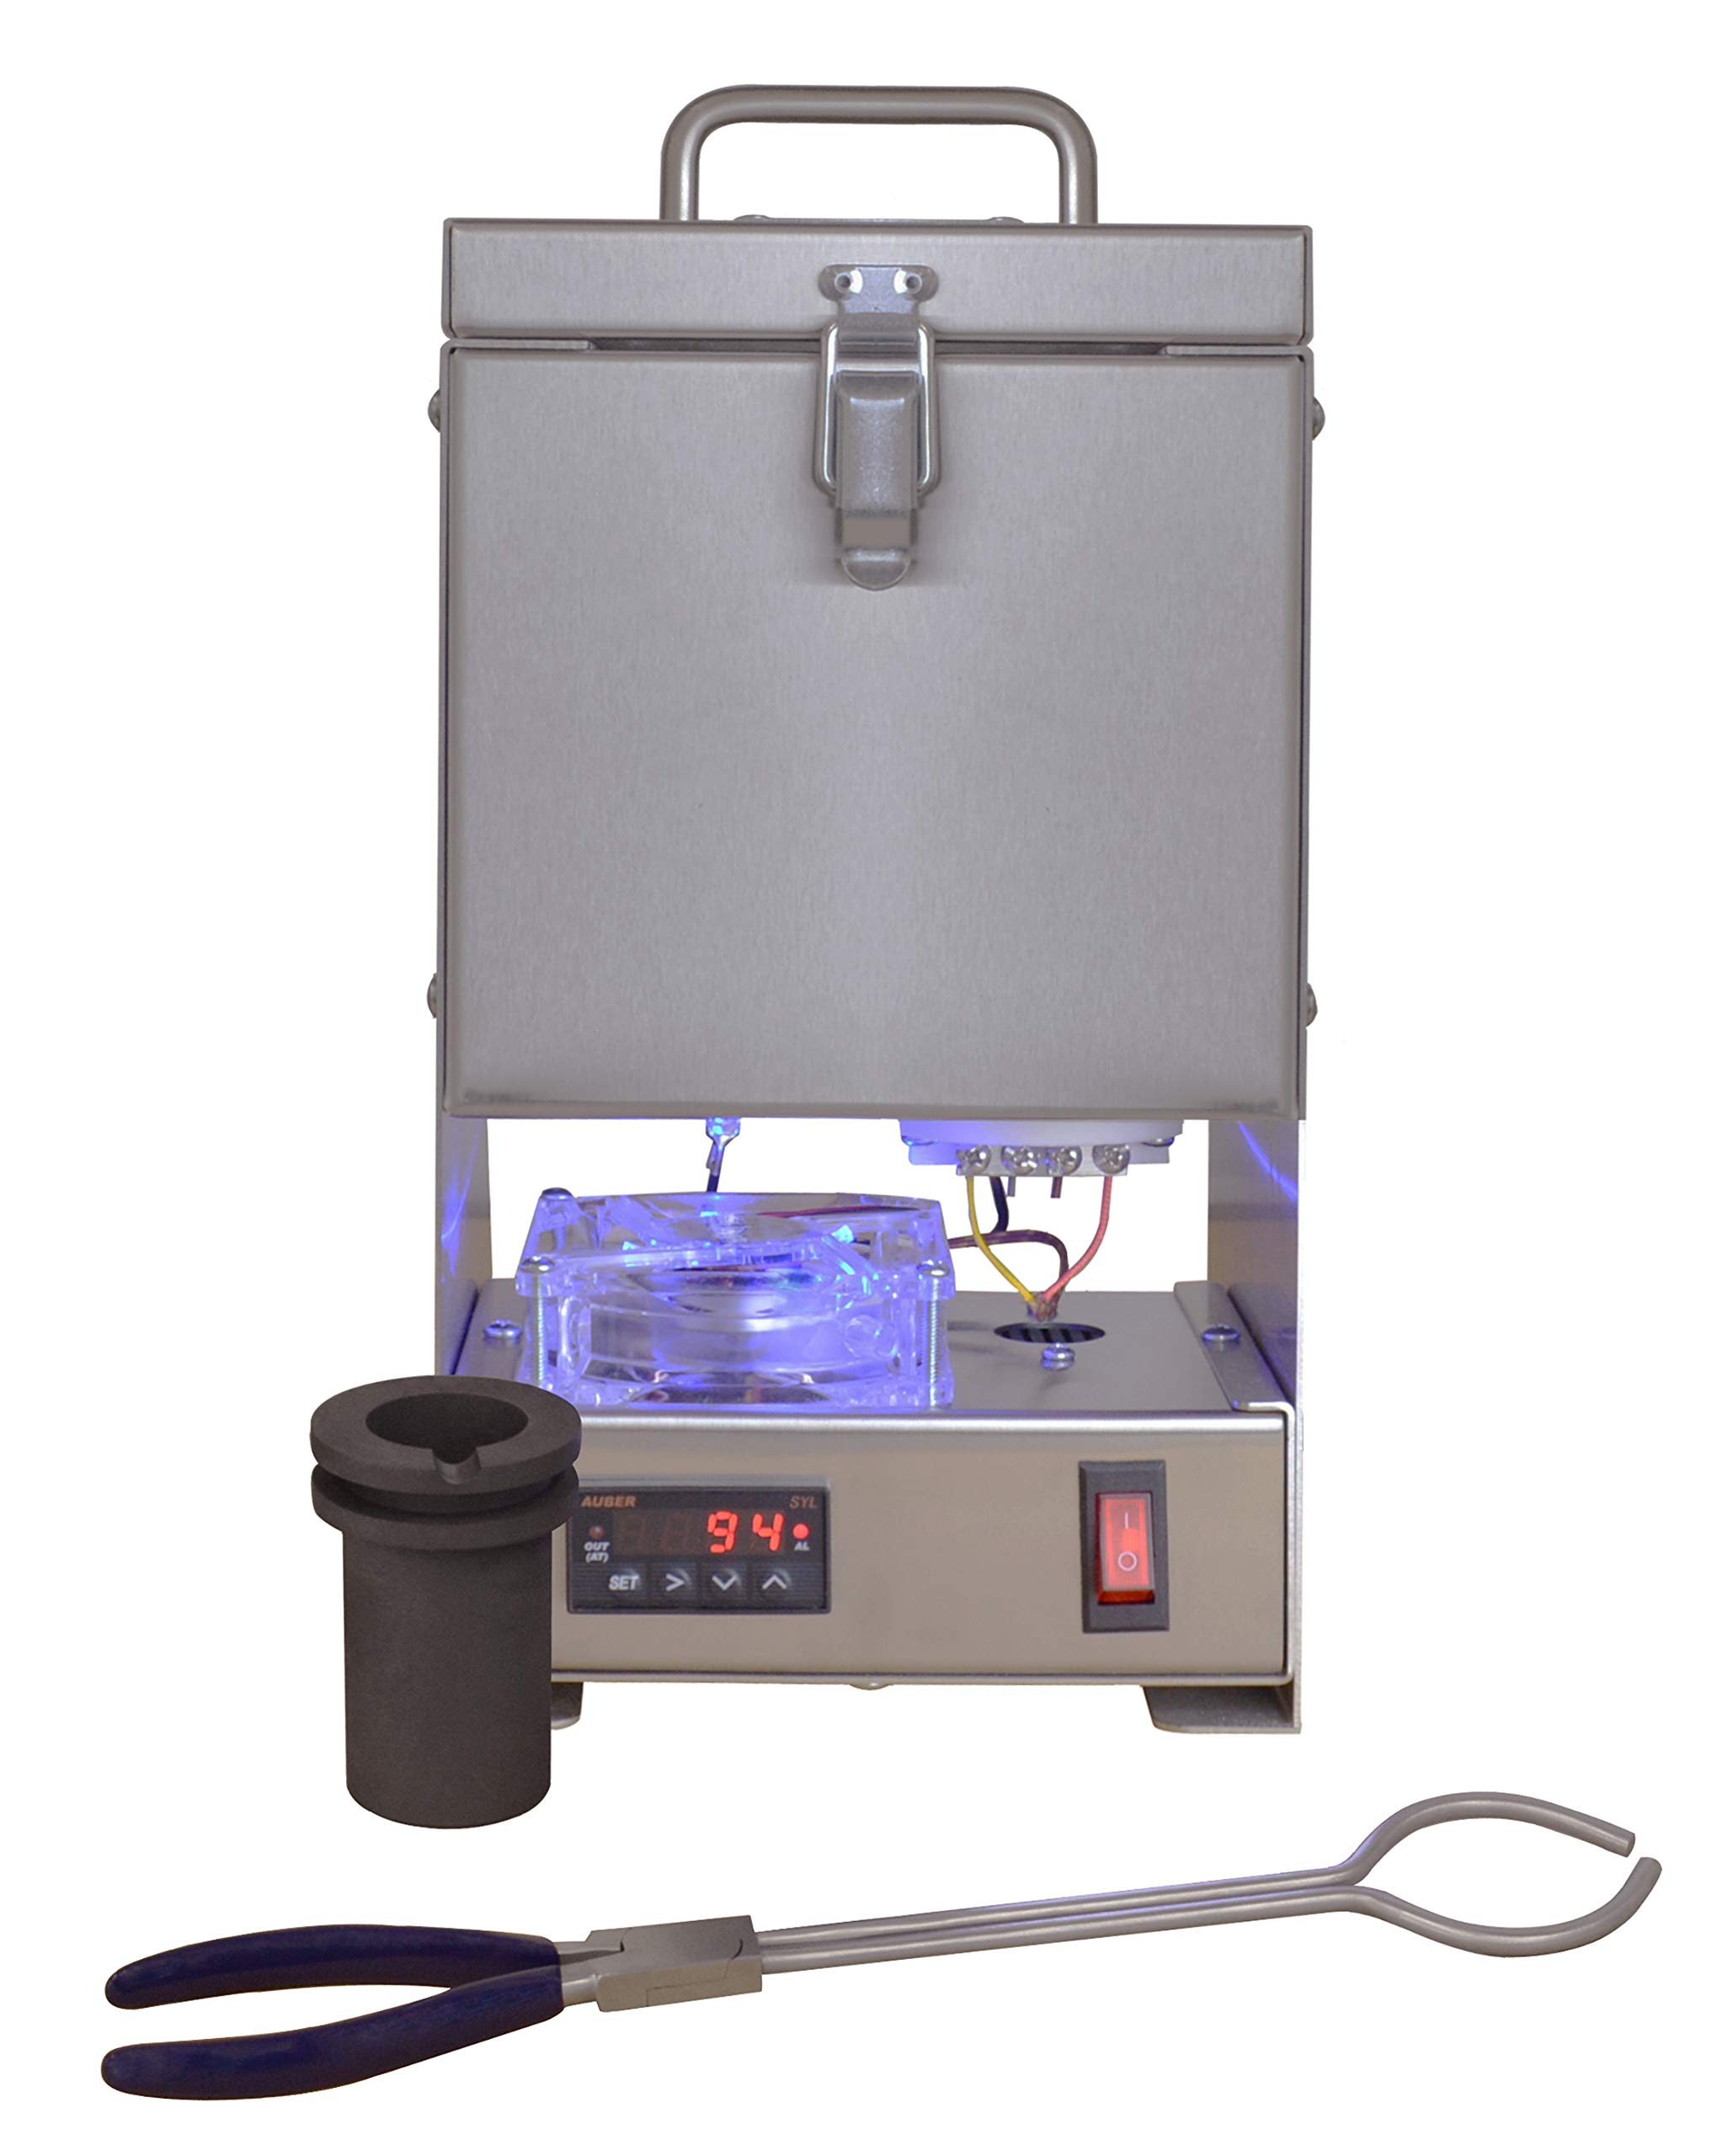 Quikmelt Pro-30oz Electric Kiln with Digital Temperature Controller. Perfect for Metal Casting & Refining, Melting Gold, Silver, Copper, More... by Tabletop Furnace Company